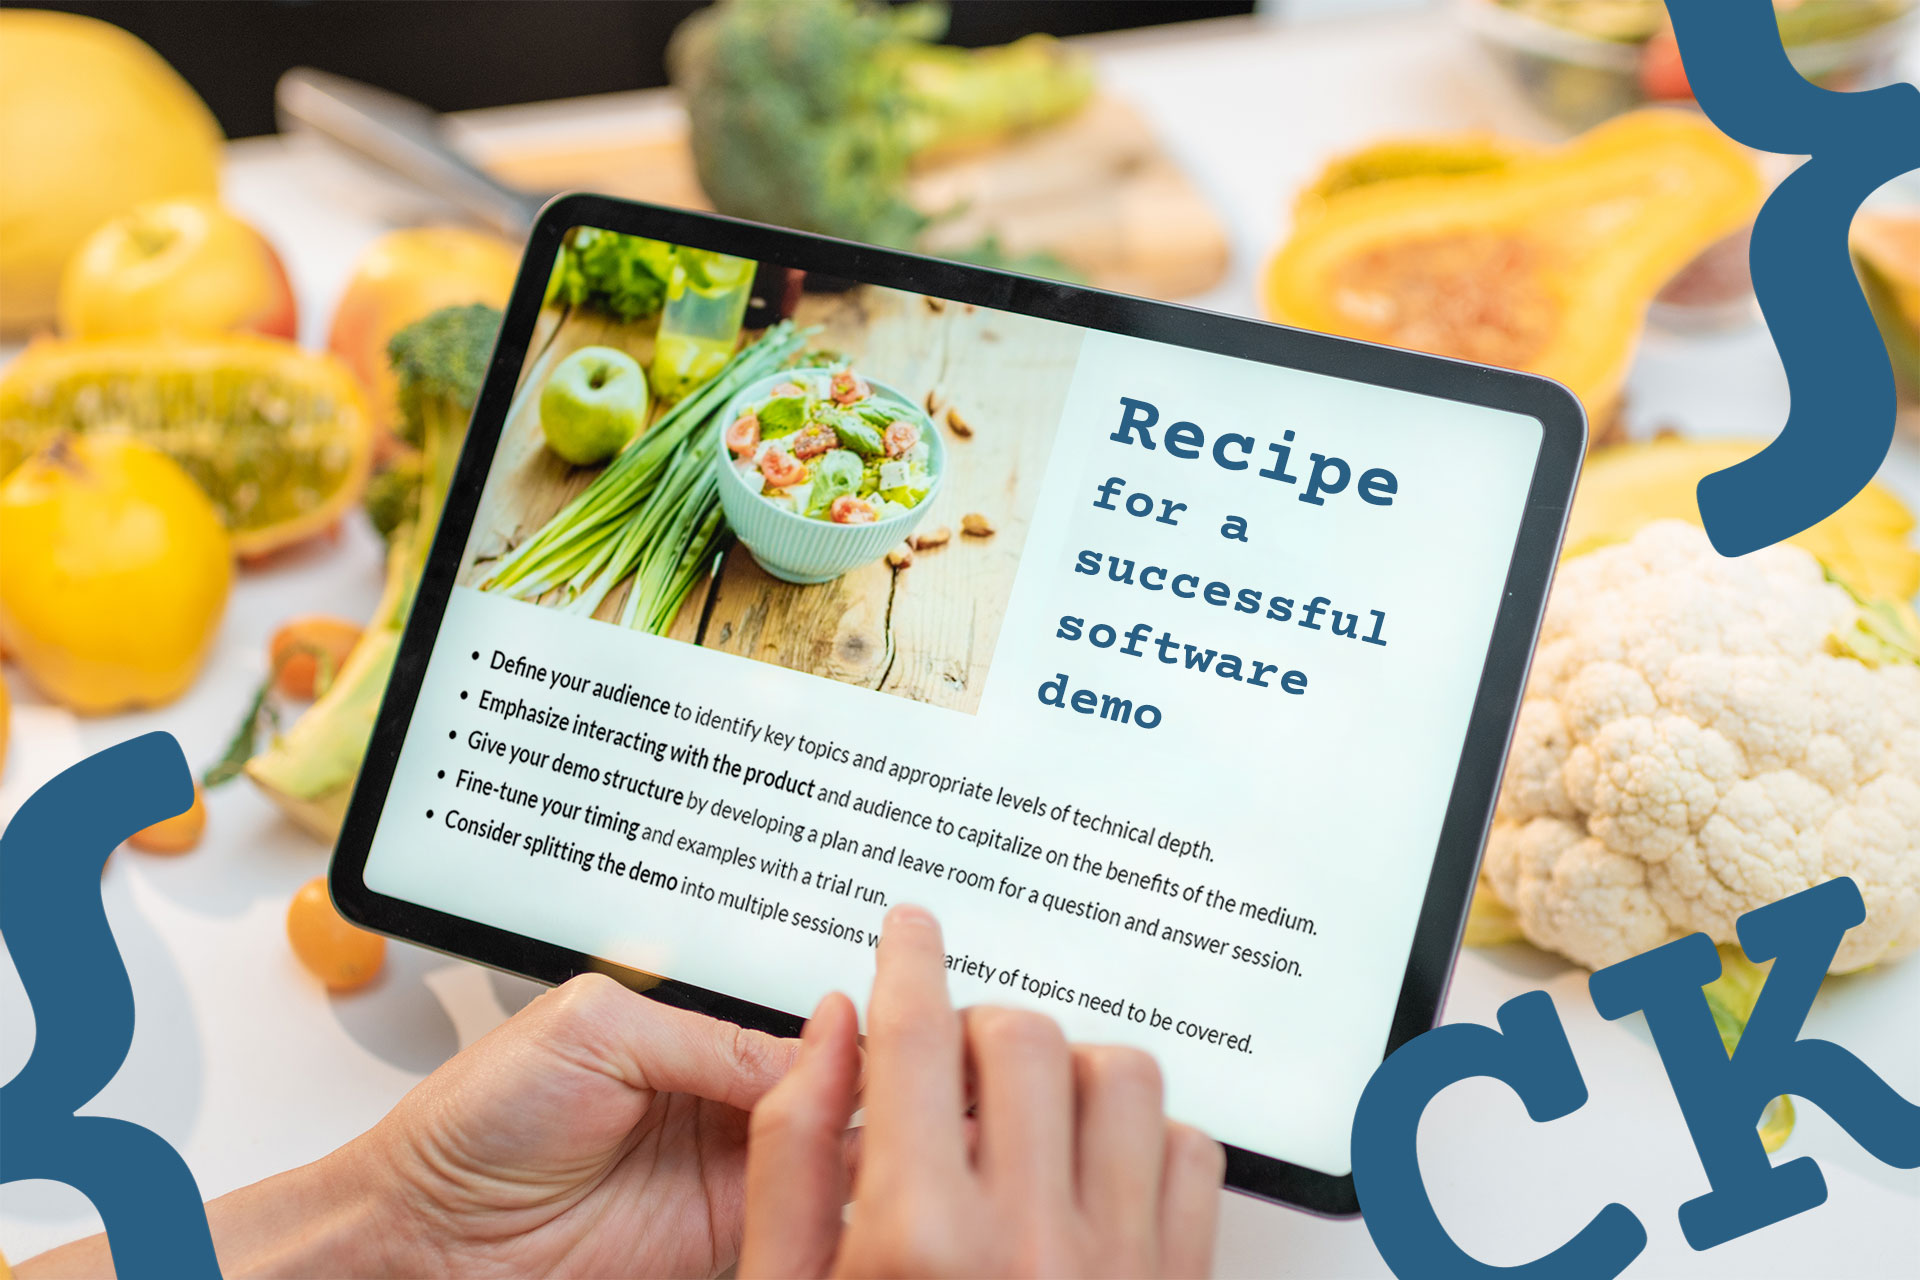 Recipe for a successful software demo